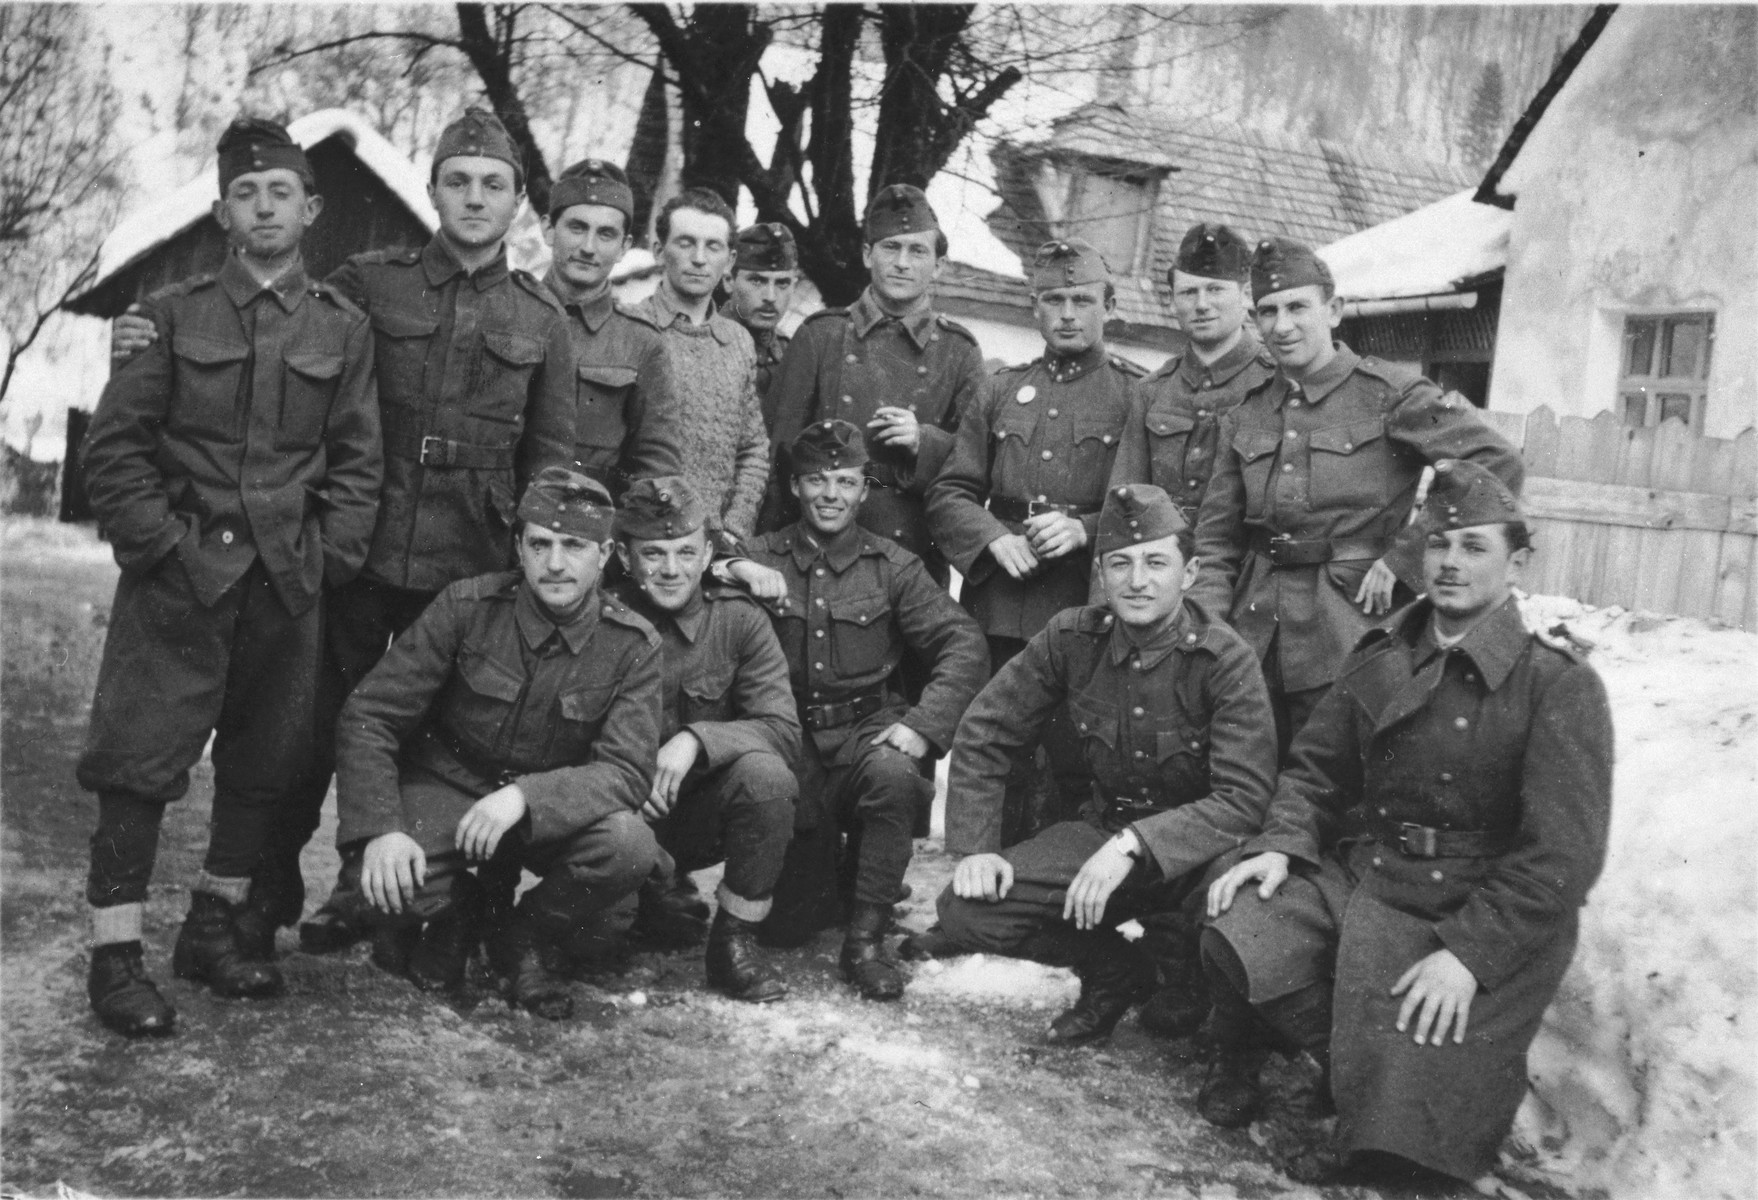 Group portrait of Jewish soldiers in the Hungarian army.  Jeno Lebowiz is pictured kneeling second from the right.  Also pictured are Klein (front row, center) and Greenstein (standing, second from the right).